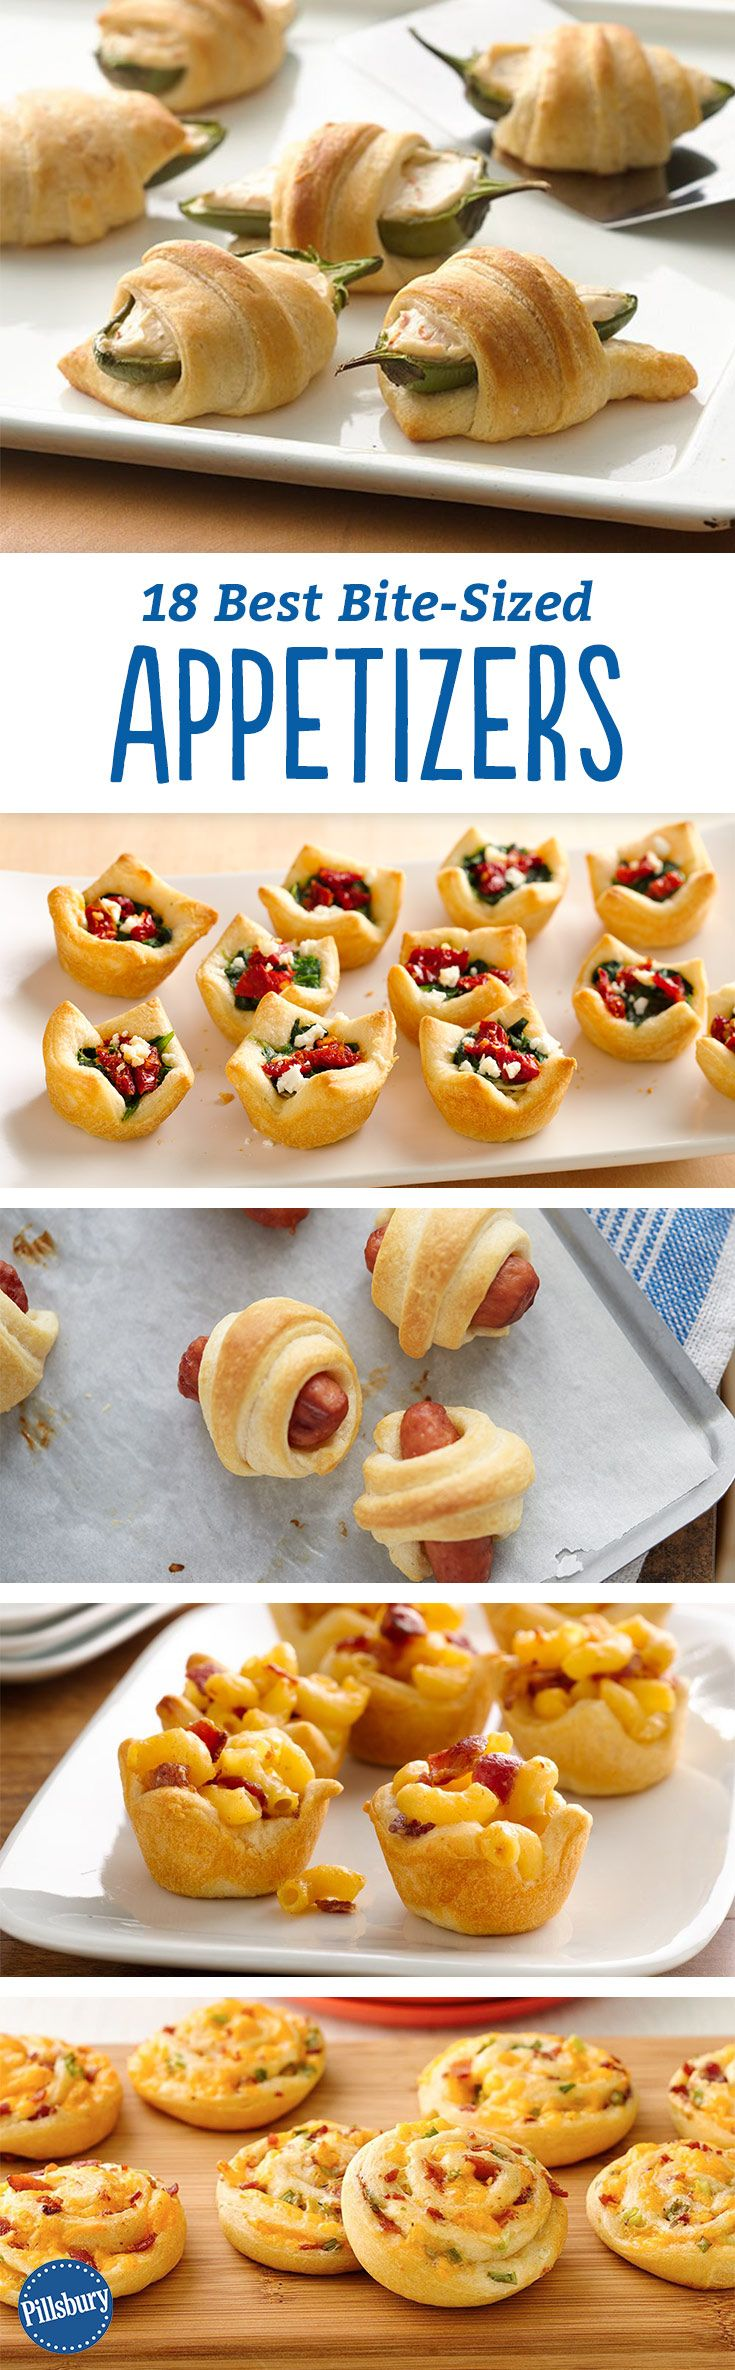 156 Best Images About Appetizers On Pinterest Skillets